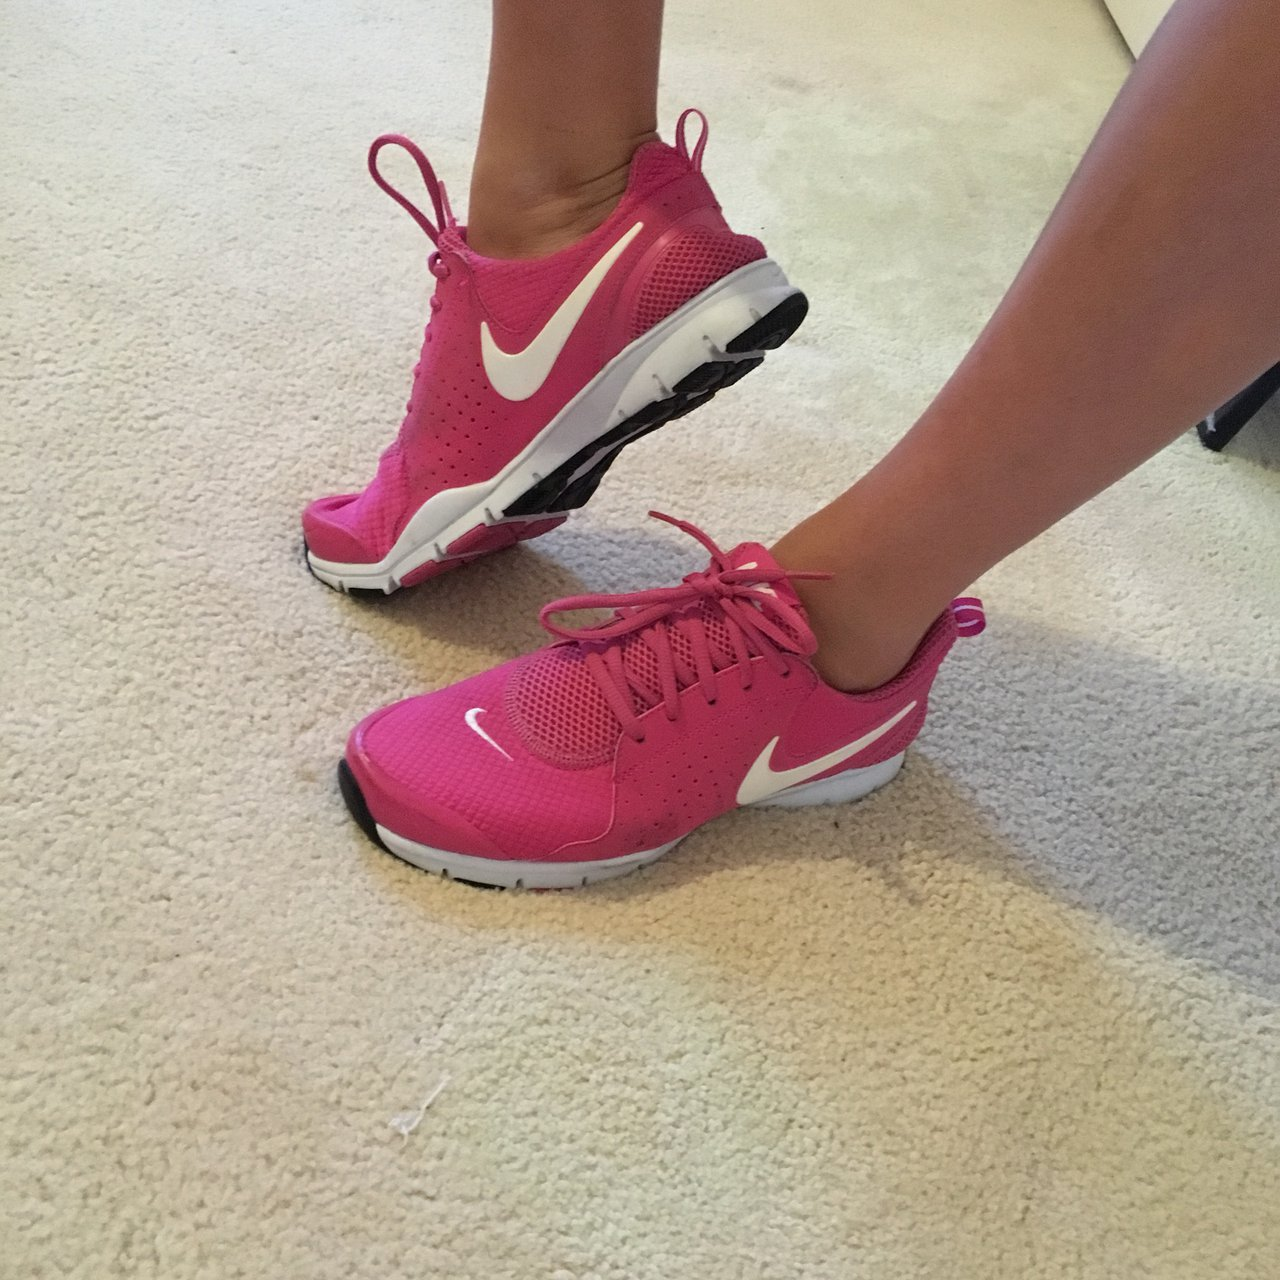 20df494c2cf862 Pink nike flex shoes. Can be used for exercise or leisure! - Depop